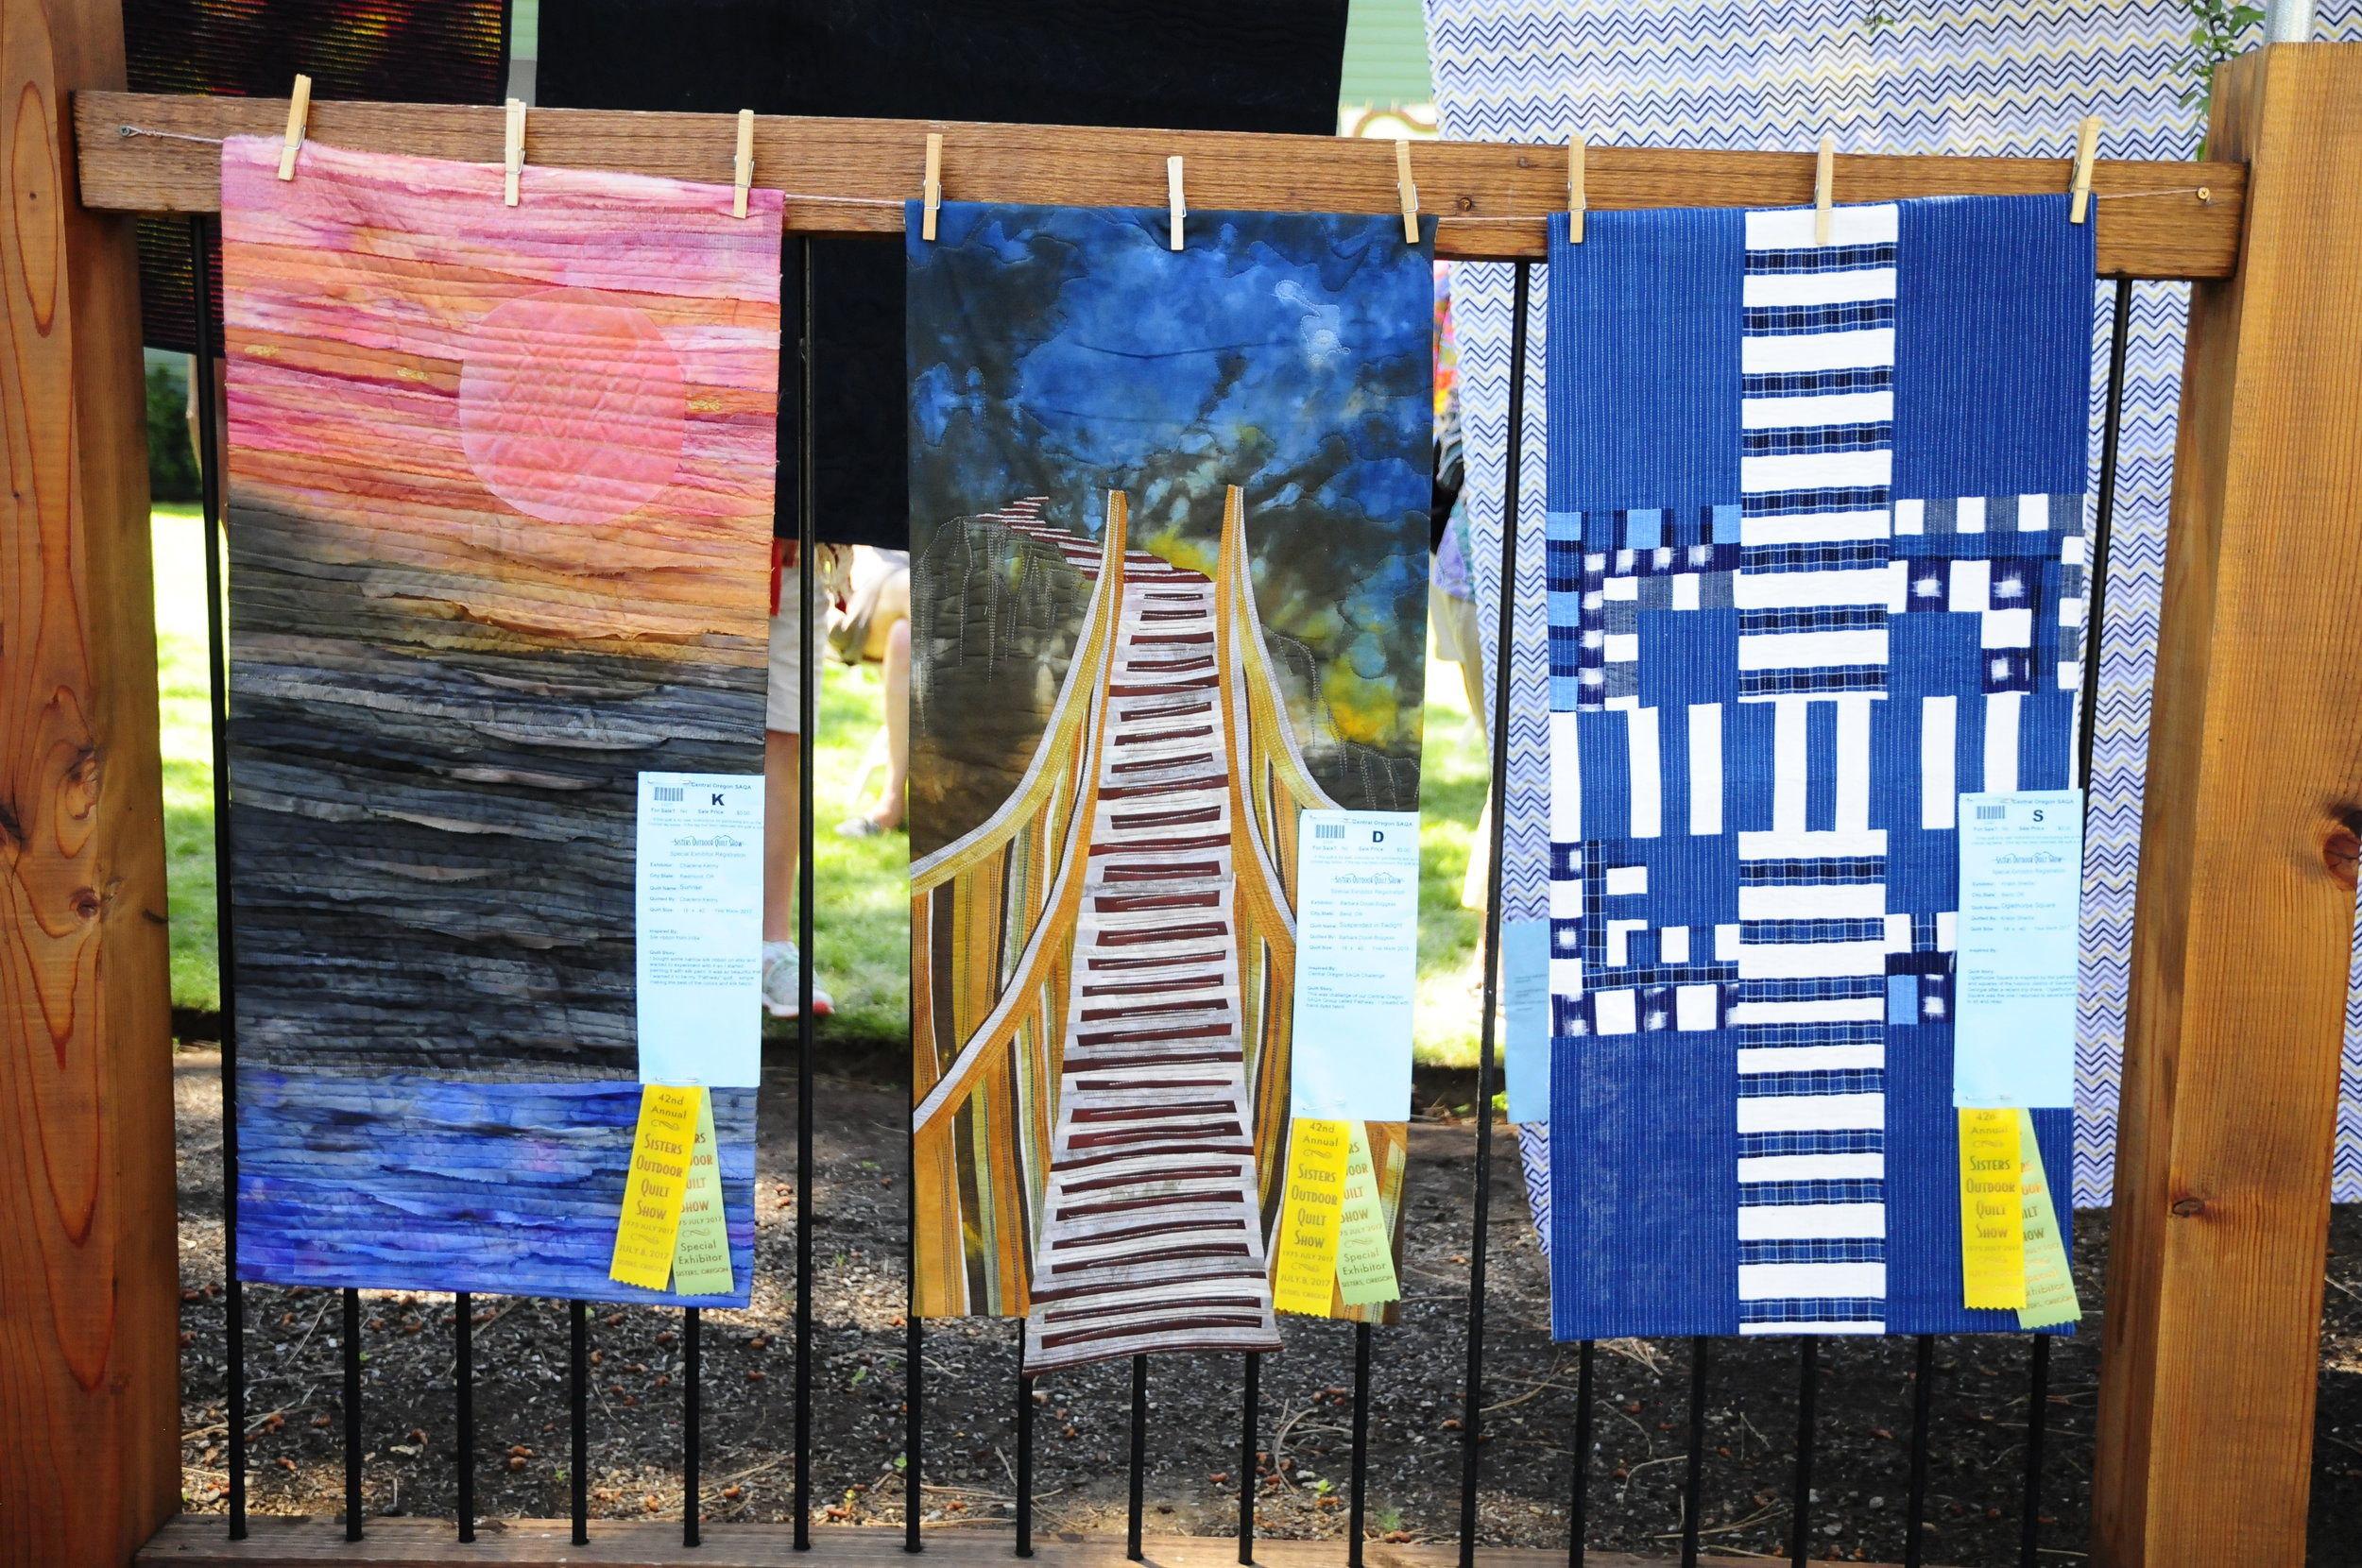 Sunrise by Charlene Kenny Suspended in Twilight by Barbara Doust-Boggess Oglethorpe Square by Kristin Shields